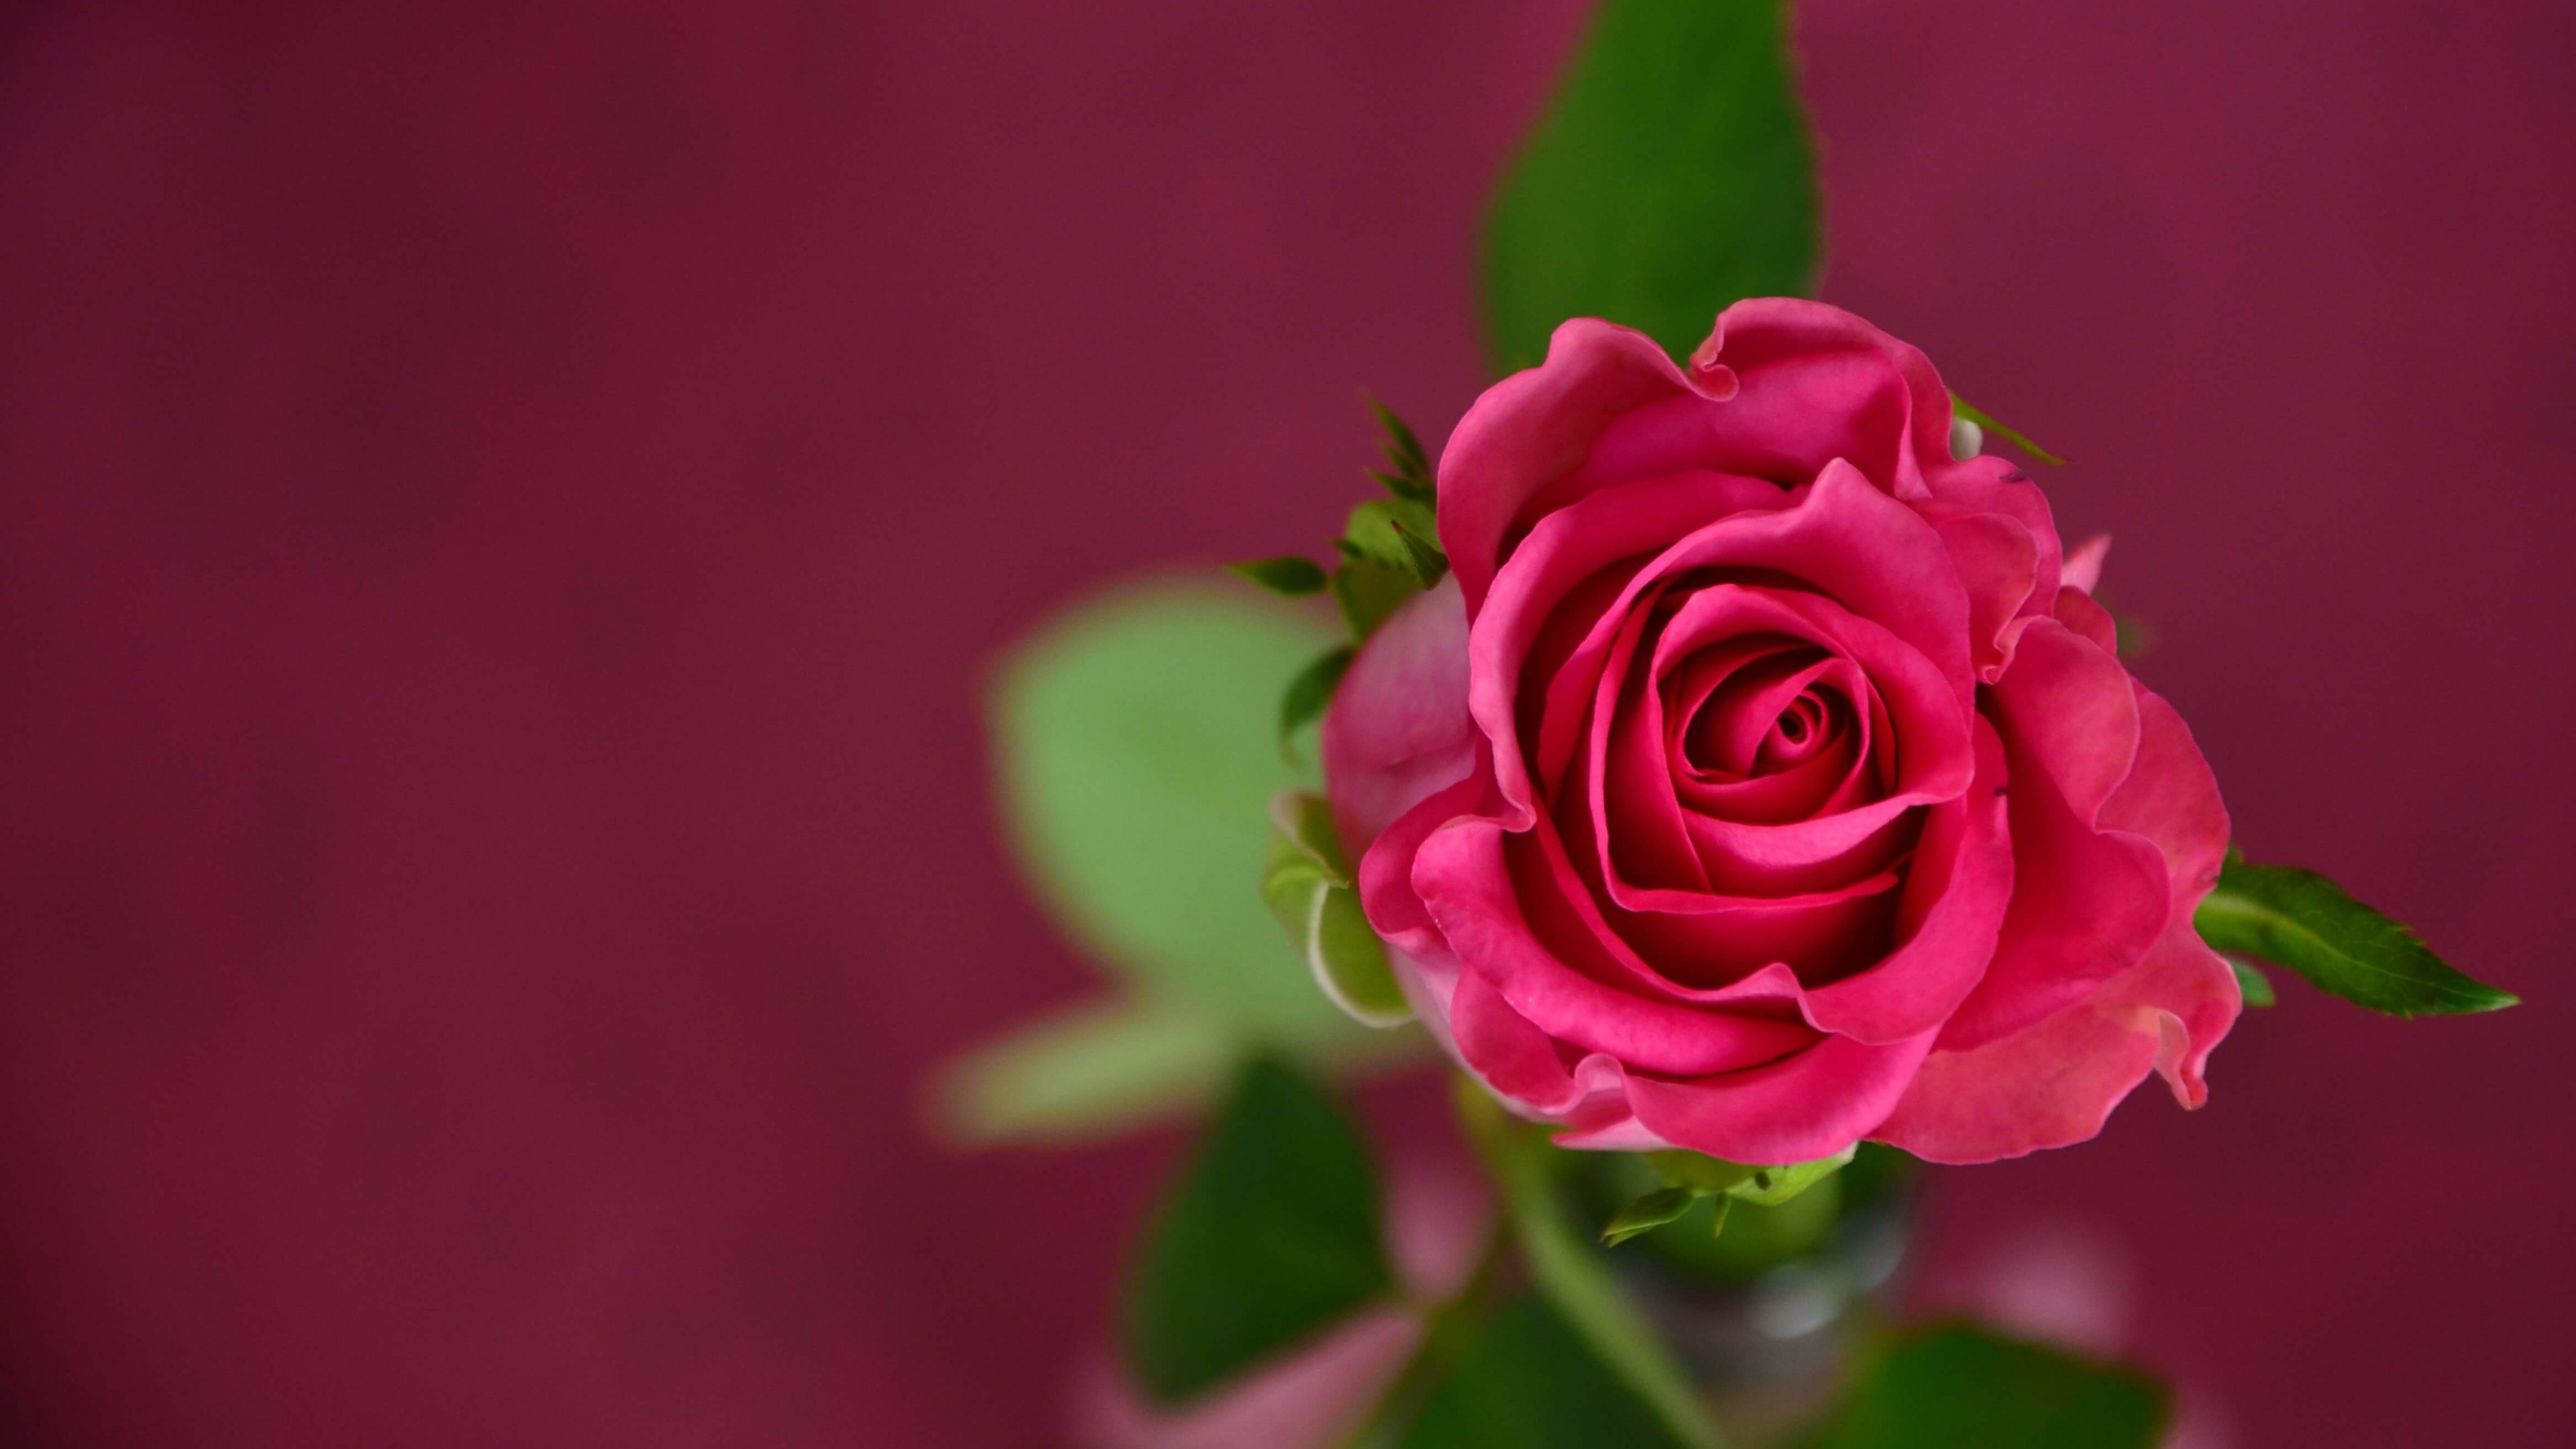 Single Pink Rose Wallpaper for Desktop 4K 3840x2160